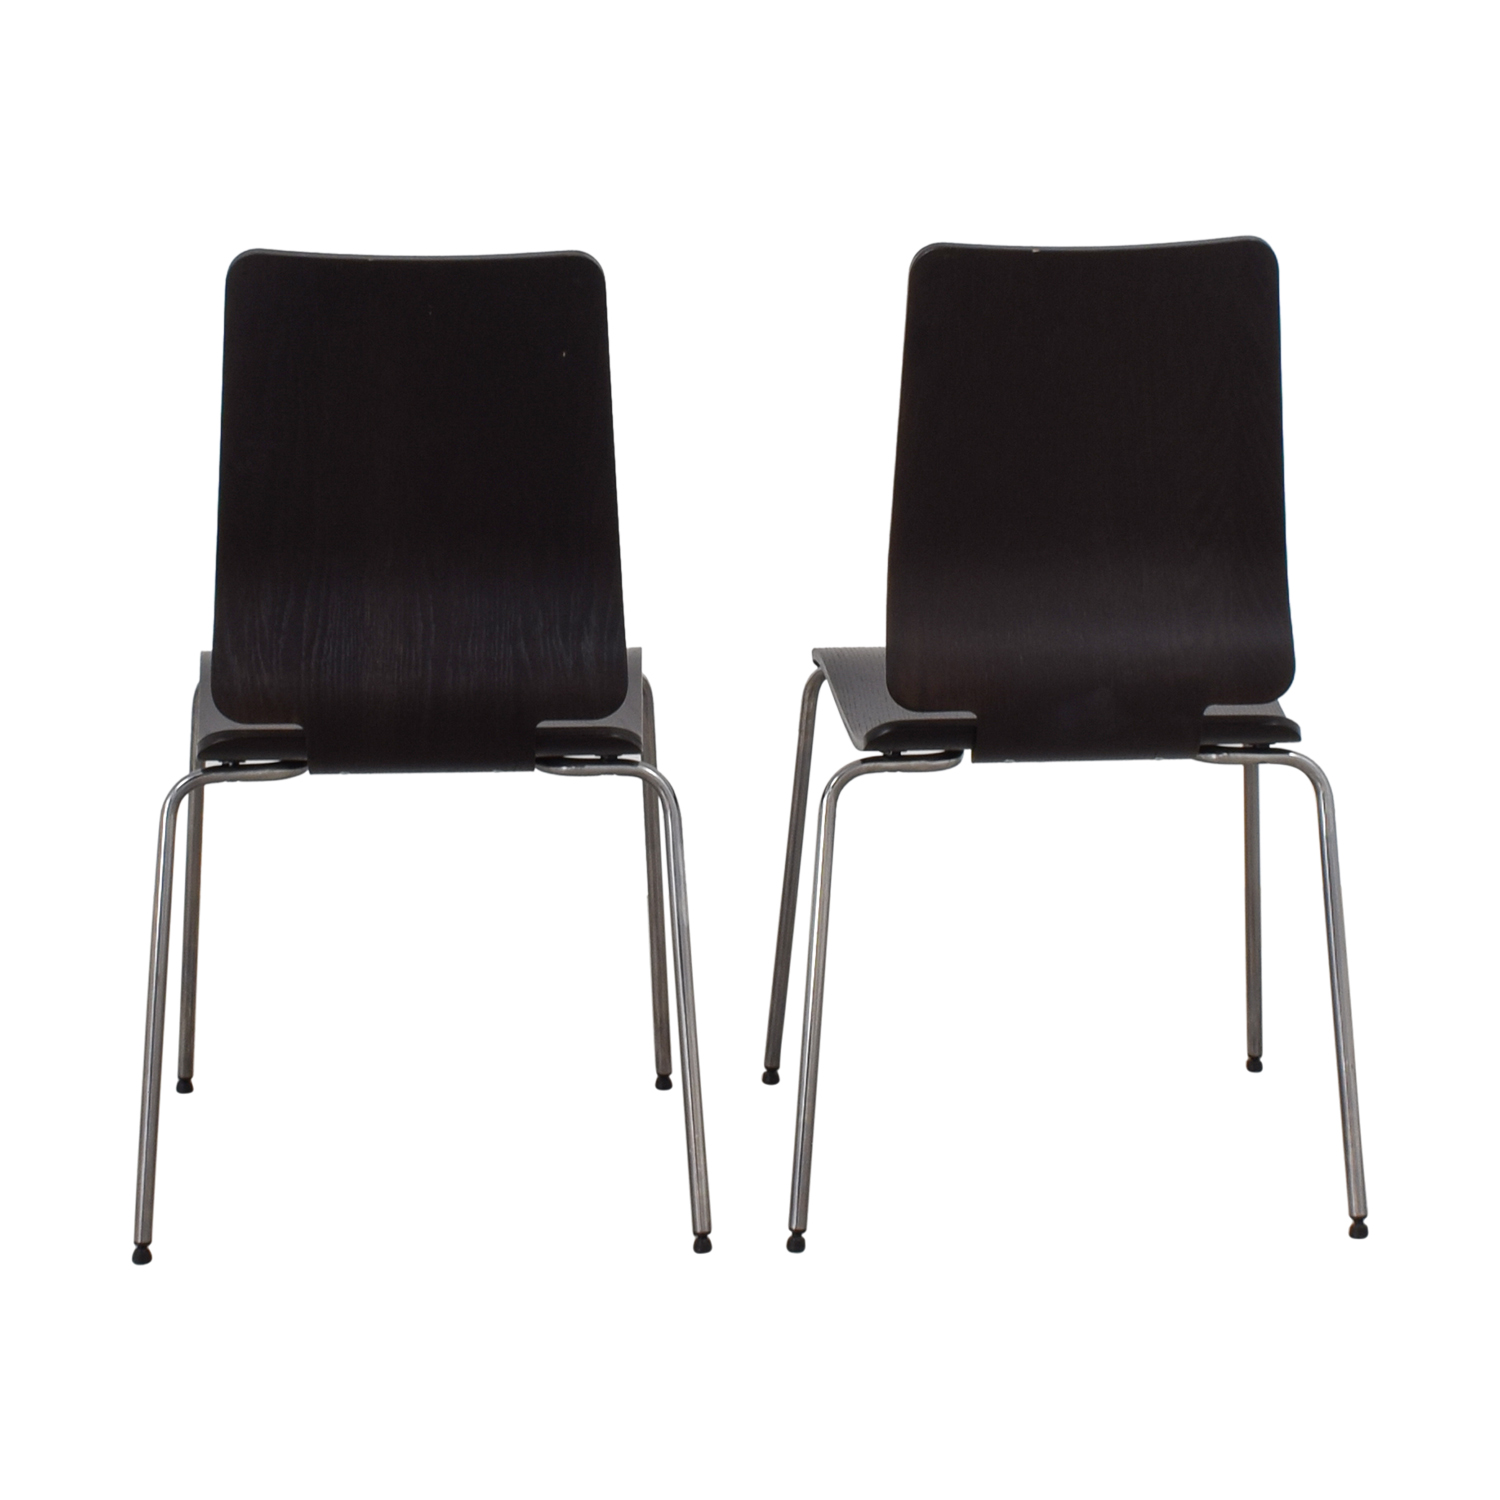 Astounding 60 Off Ikea Ikea Black And Chrome Chairs Chairs Spiritservingveterans Wood Chair Design Ideas Spiritservingveteransorg